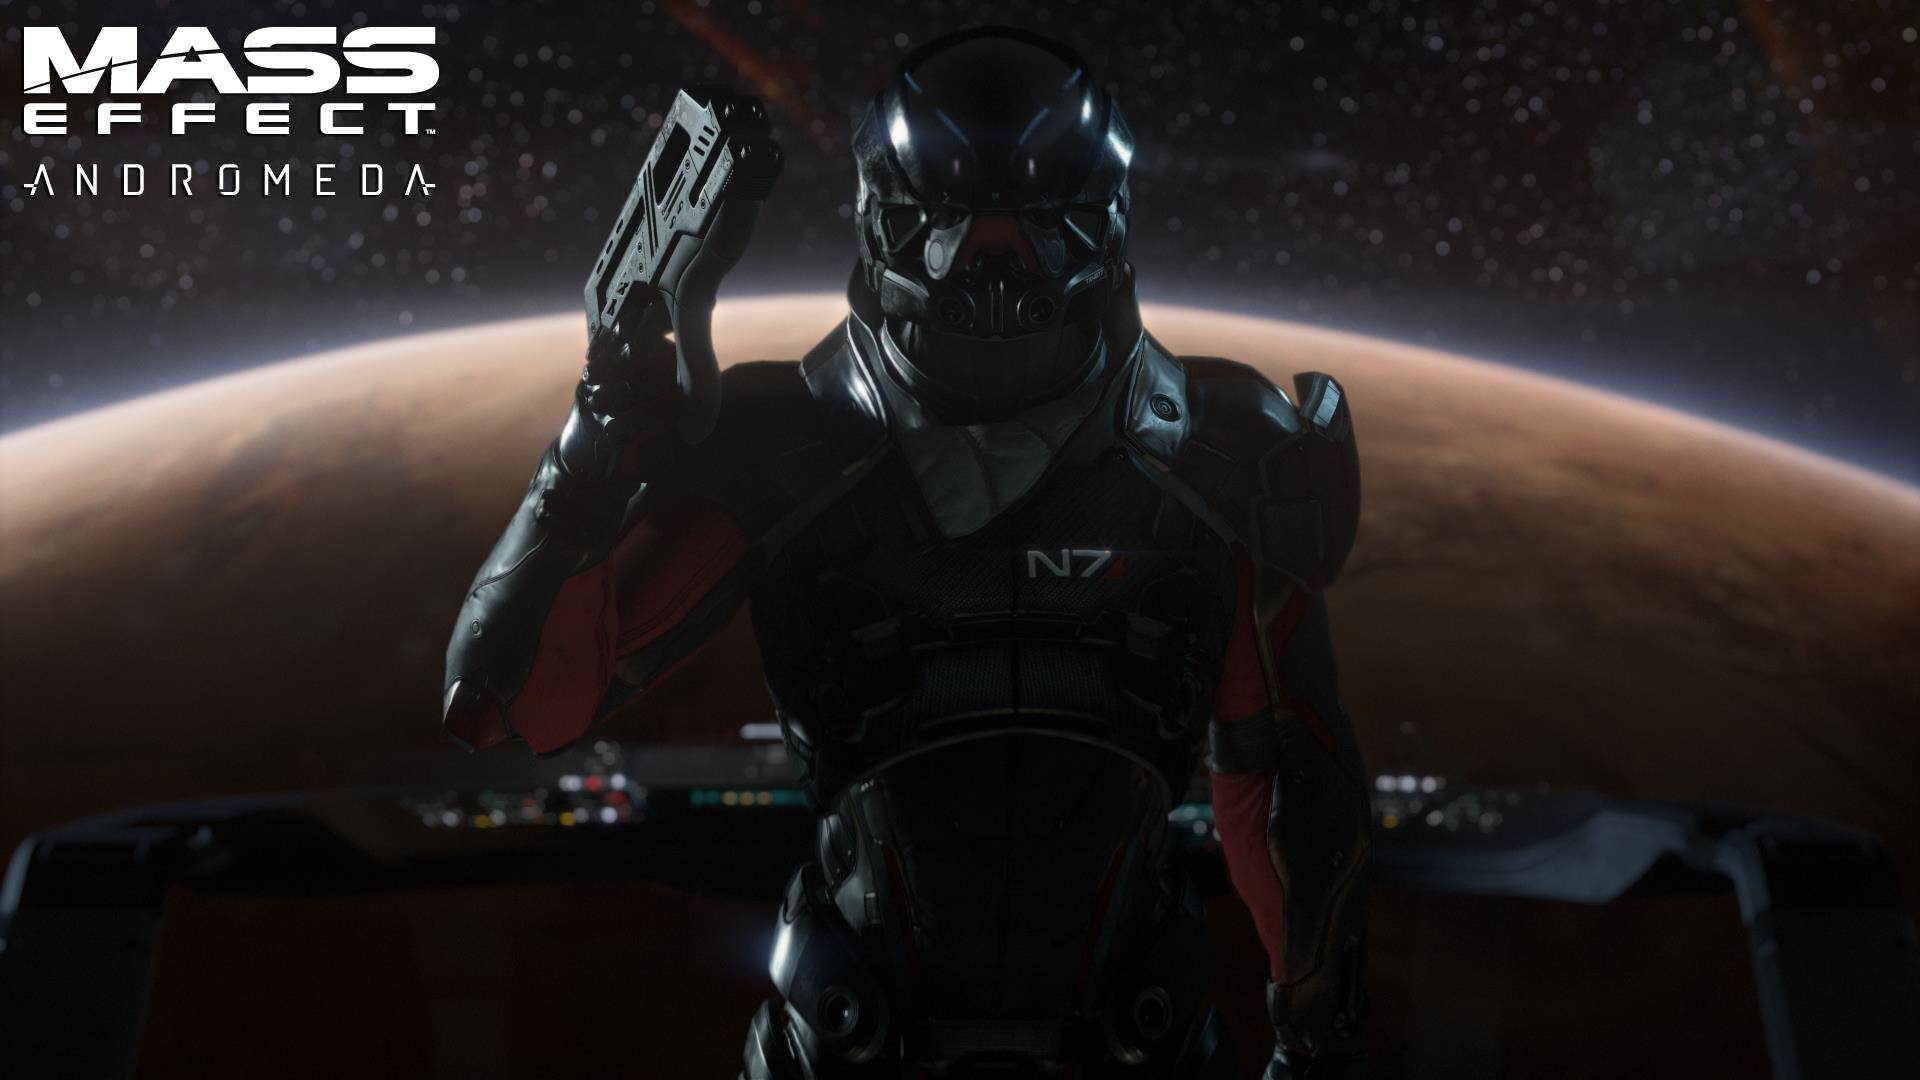 mass effect andromeda e3 trailer 6 Leaked Mass Effect Andromeda Survey Holds Some Key Details